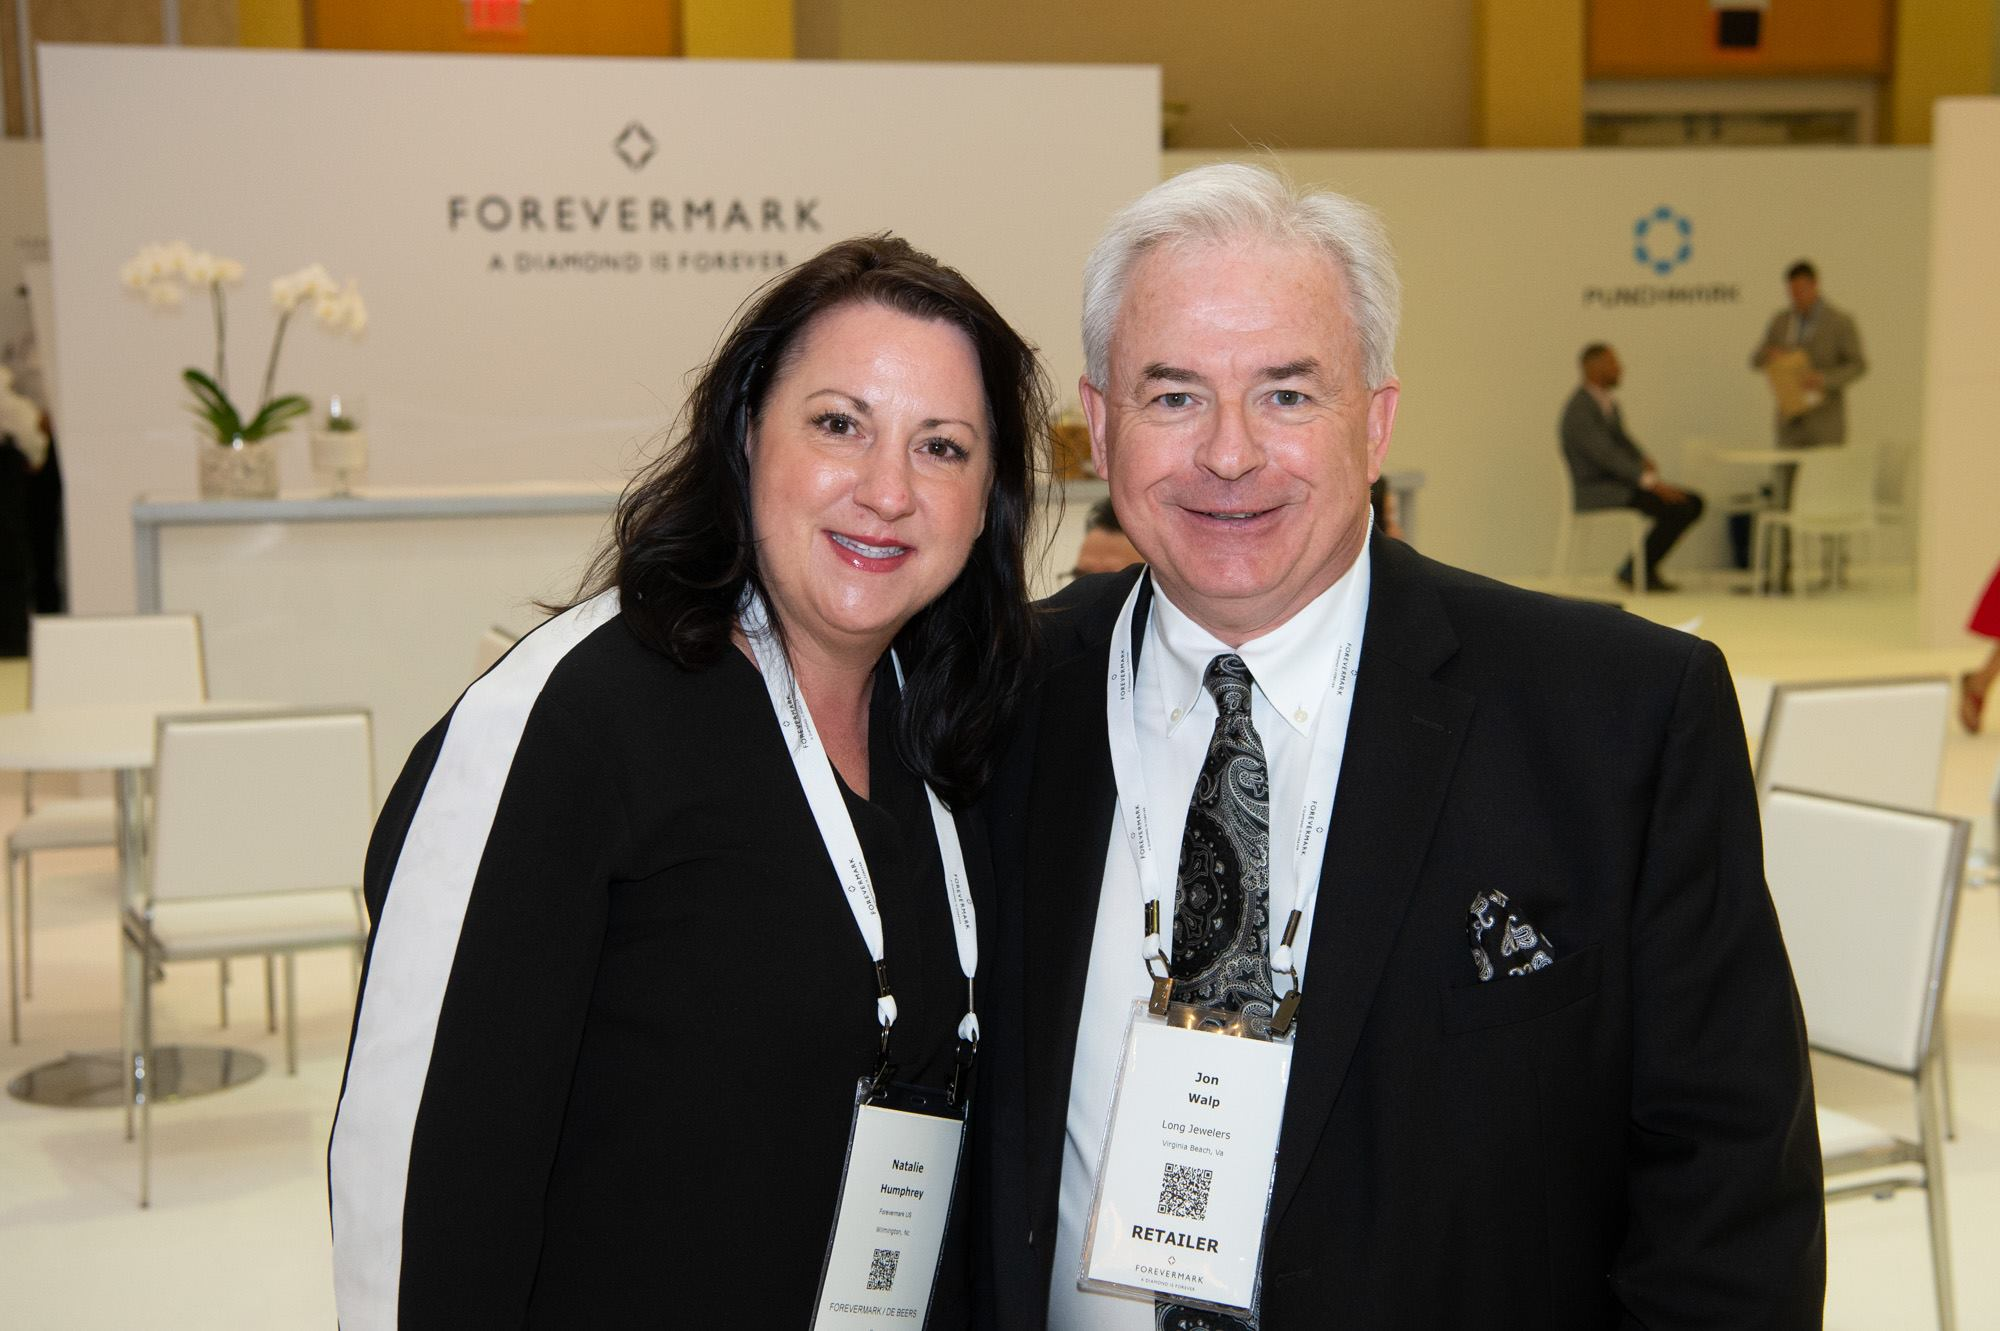 Long Jewelers Attends the Eighth Annual Forevermark Forum in Palm